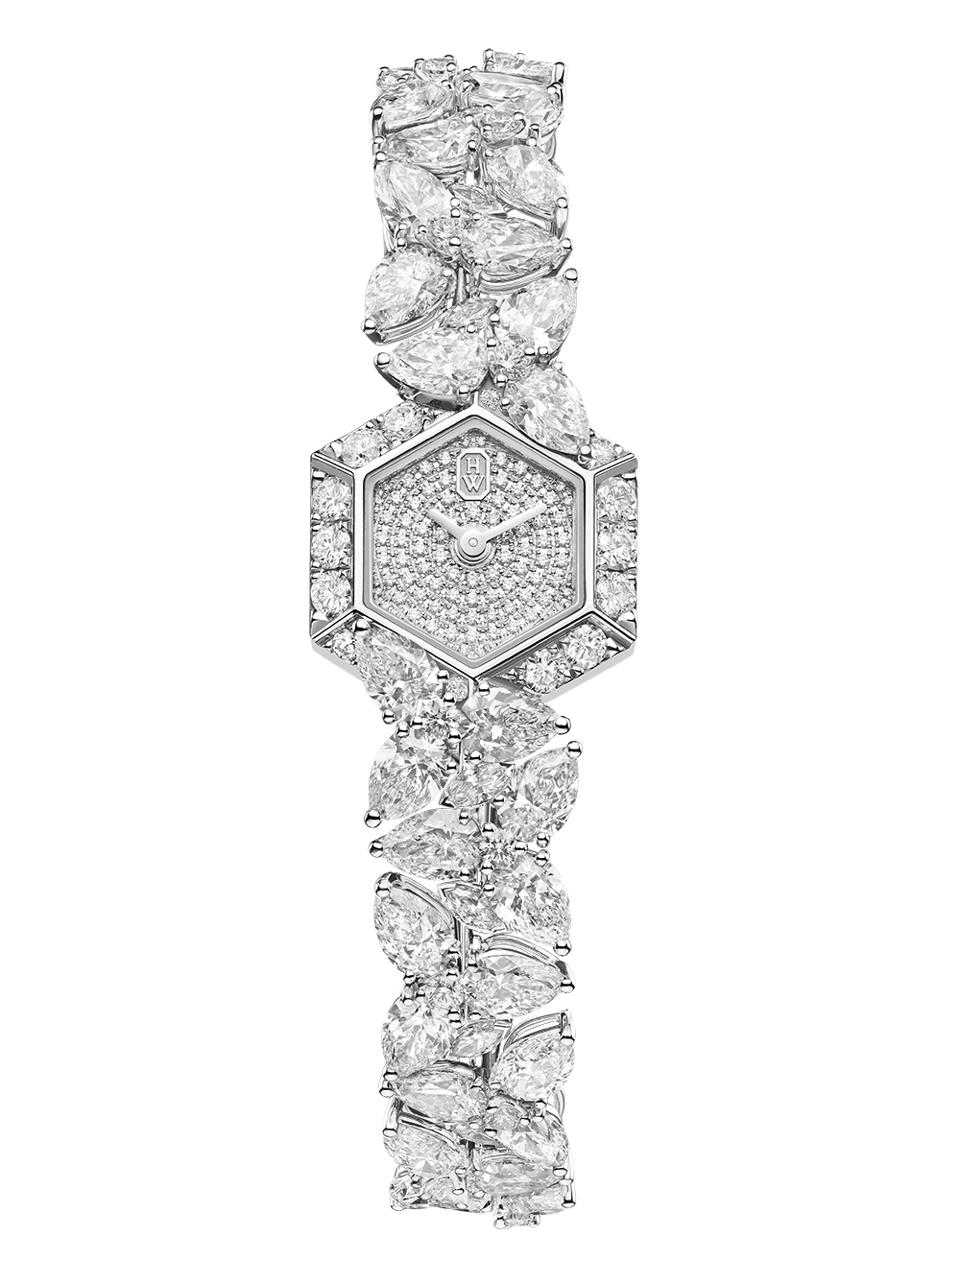 The Harry Winston Precious Cluster, set with brilliant, marquise, and pear-cut diamonds totaling over 25 carats.